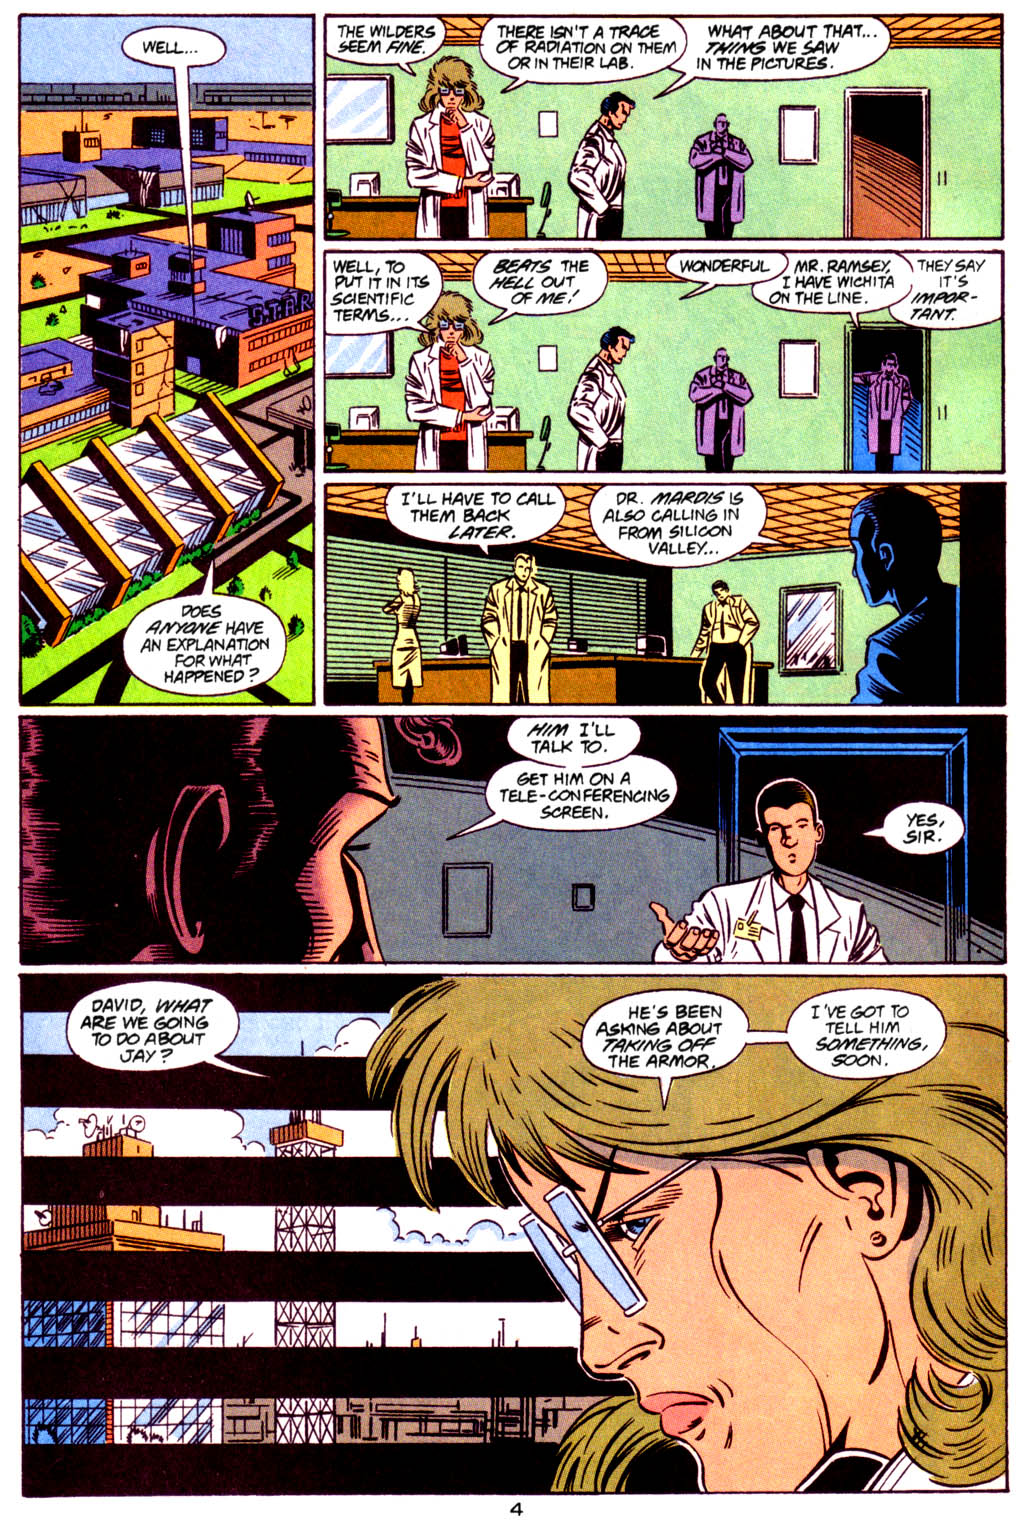 Read online S.T.A.R. Corps comic -  Issue #2 - 5